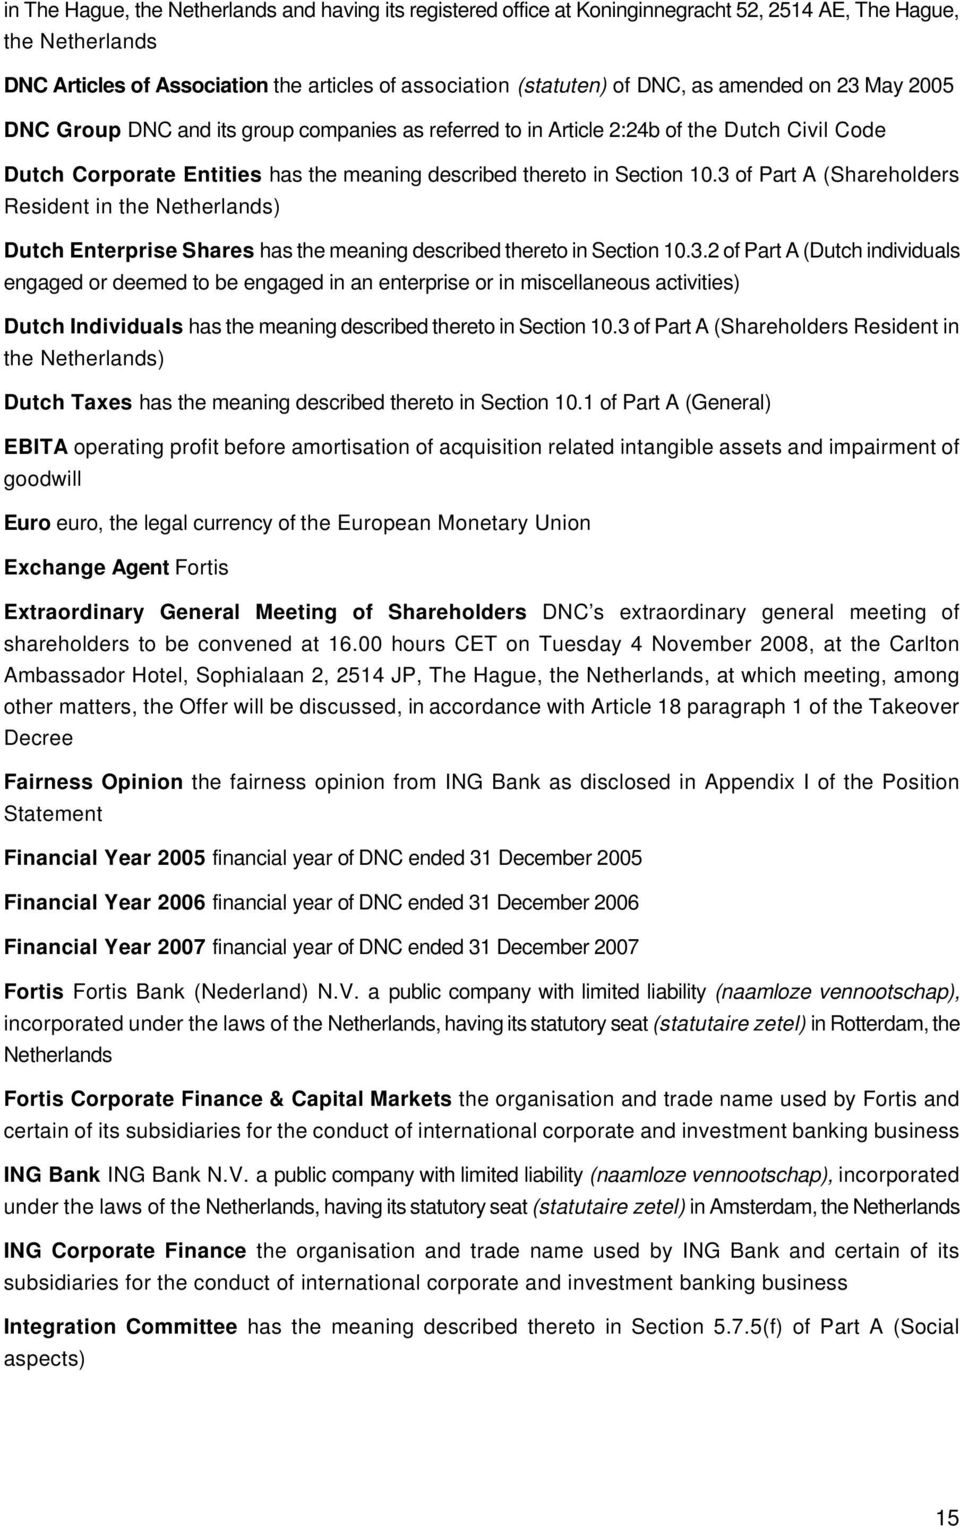 3 of Part A (Shareholders Resident in the Netherlands) Dutch Enterprise Shares has the meaning described thereto in Section 10.3.2 of Part A (Dutch individuals engaged or deemed to be engaged in an enterprise or in miscellaneous activities) Dutch Individuals has the meaning described thereto in Section 10.